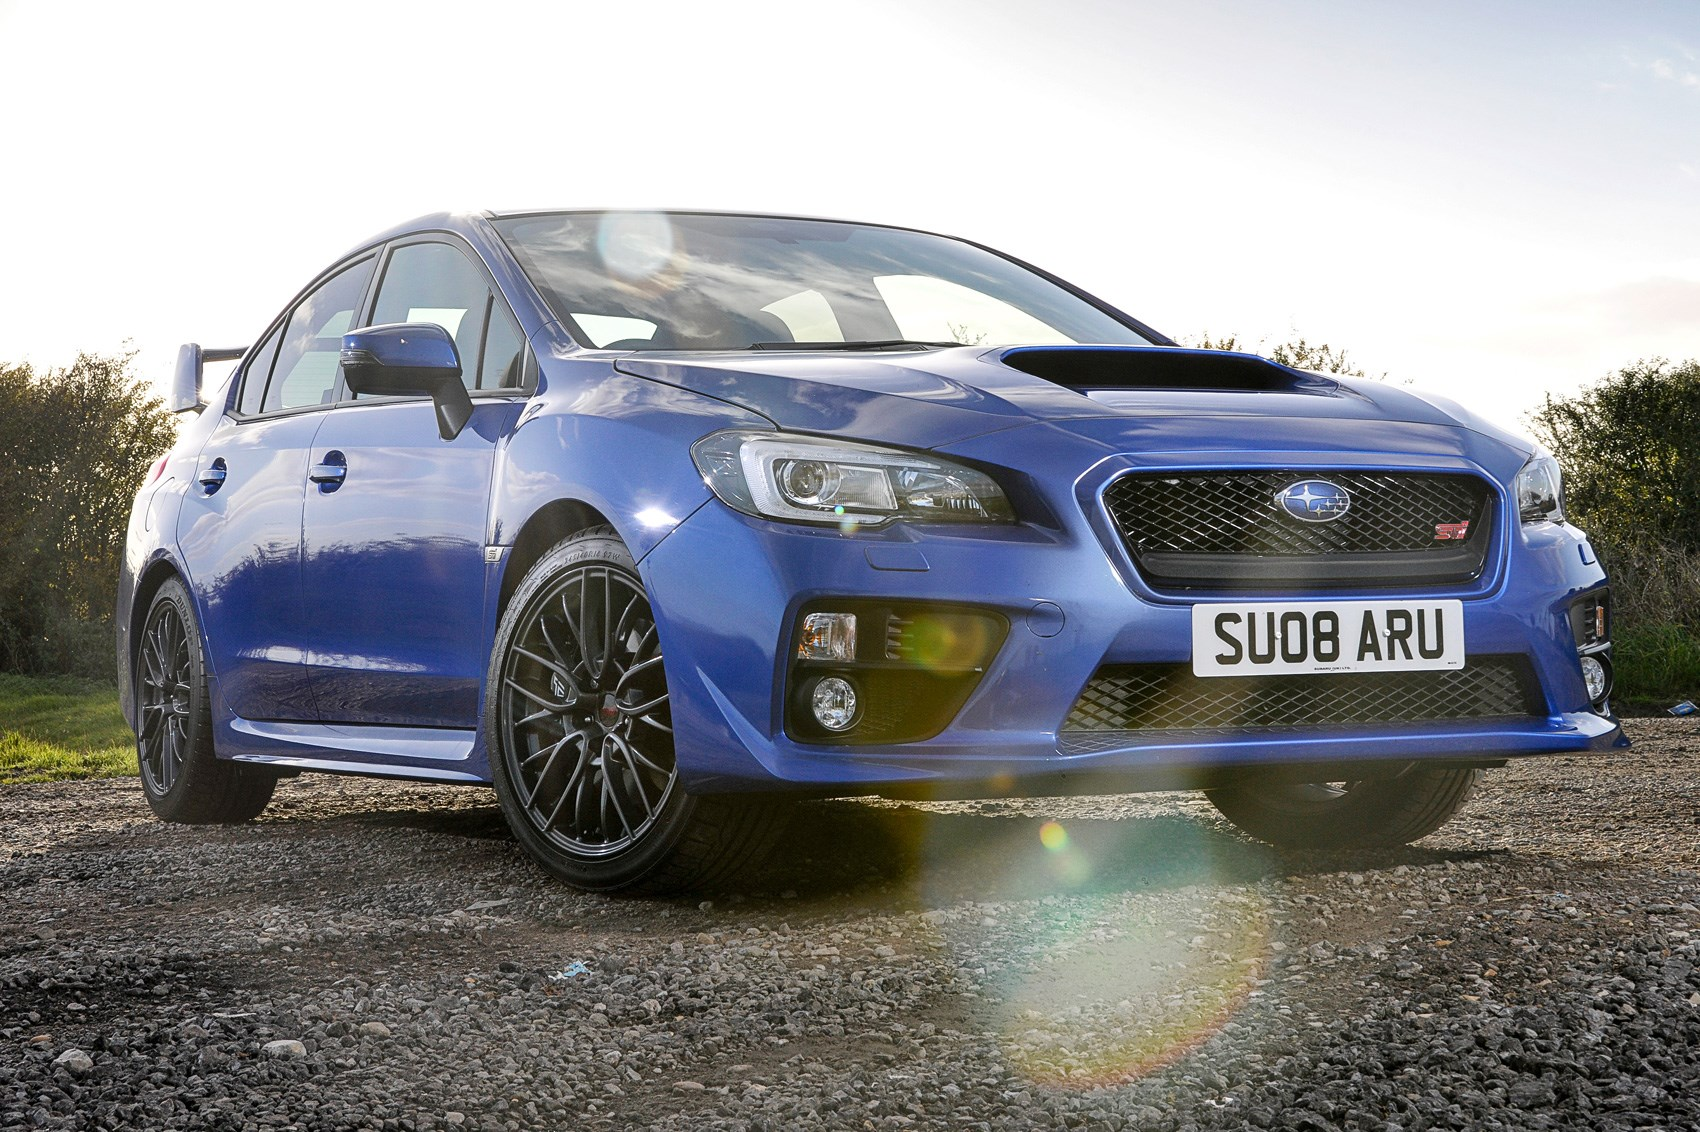 Subaru Wrx Sti 2016 Long Term Test Review Car Magazine Engines Boxer 4wd Diagram